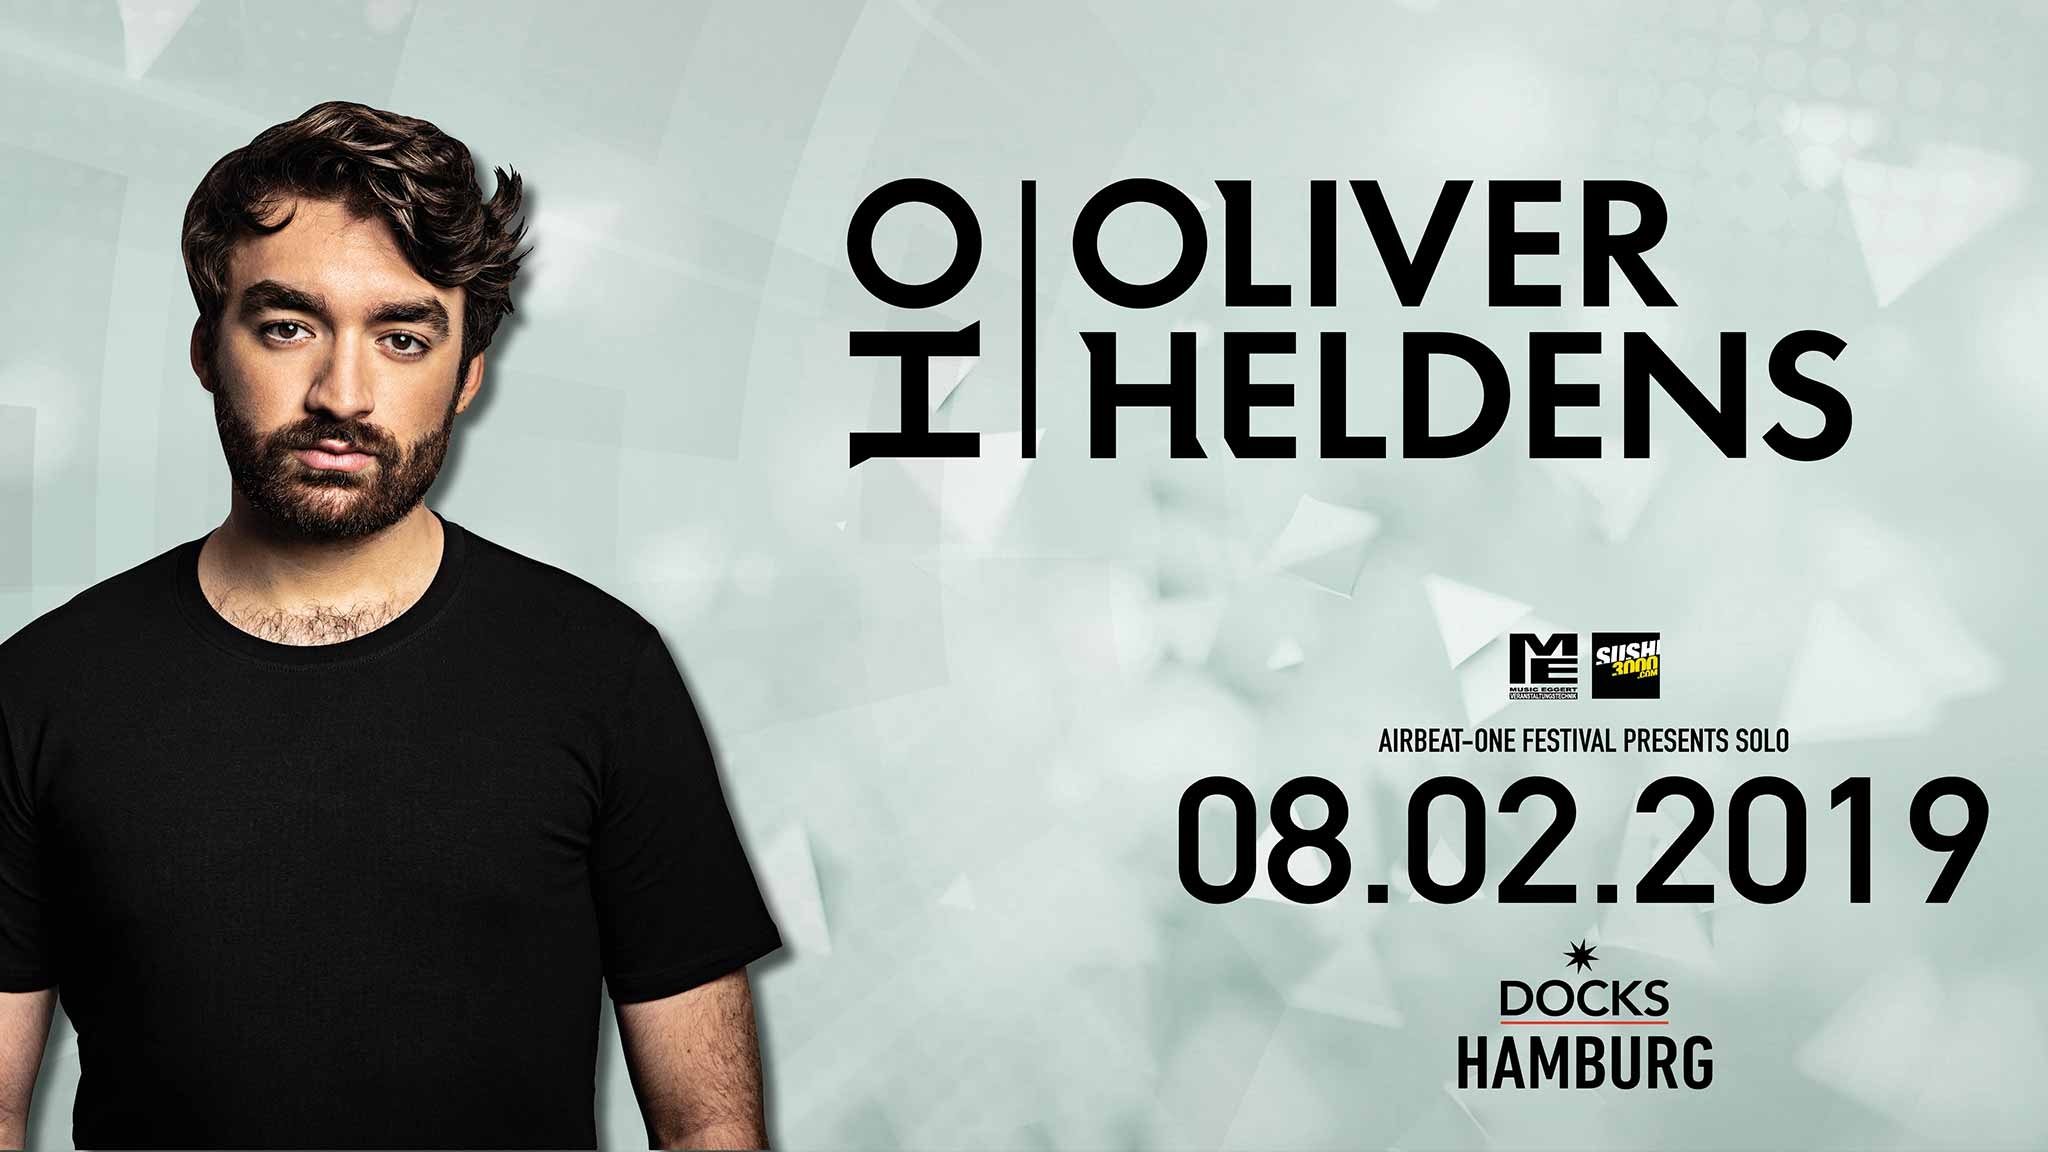 AIRBEAT ONE Festival holt Oliver Heldens ins Docks